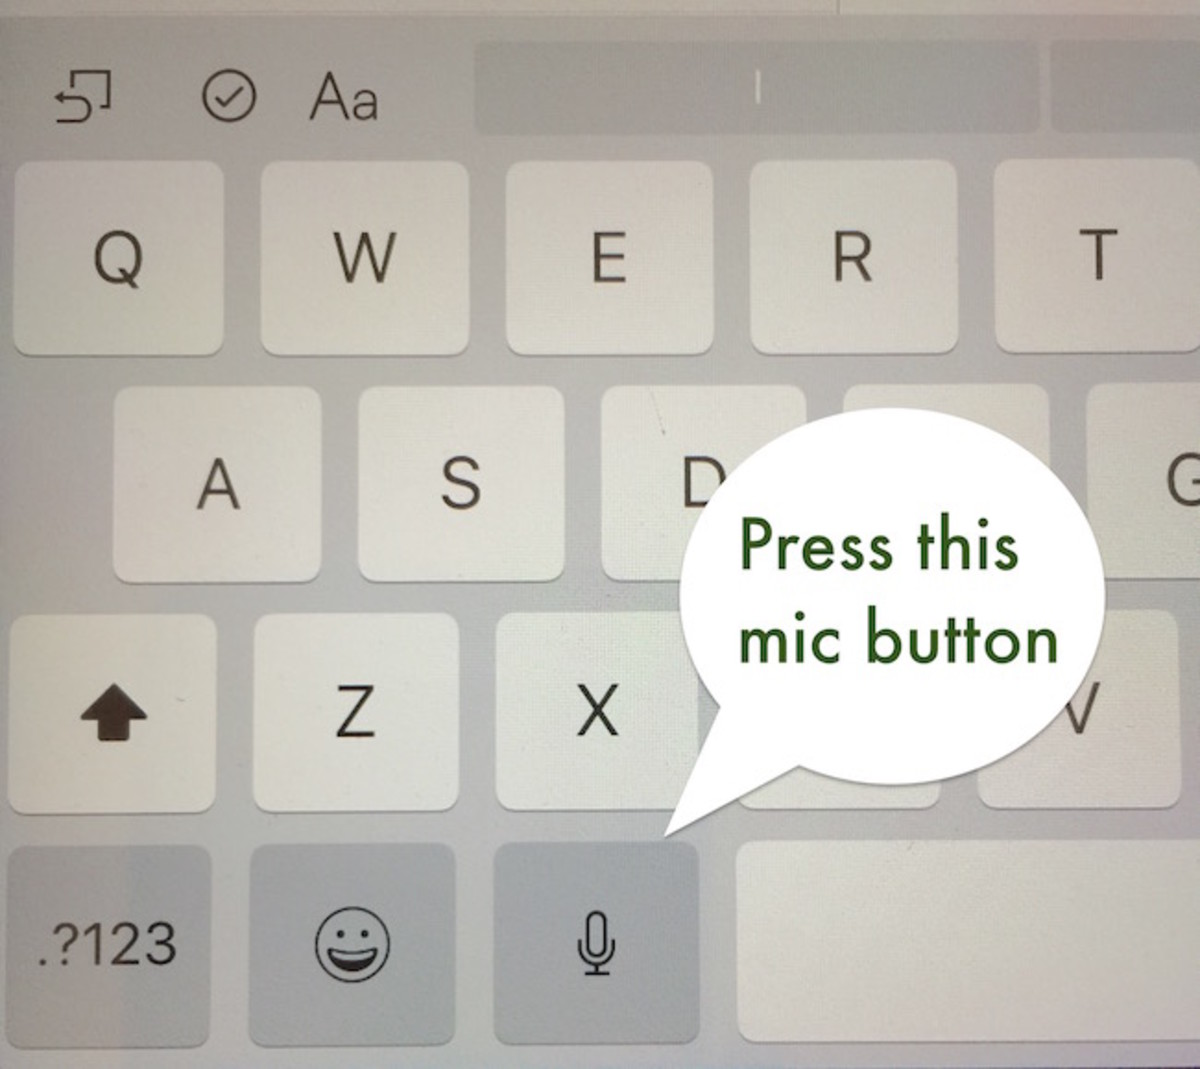 Press the Microphone key on the virtual keyboard and it types what you say.